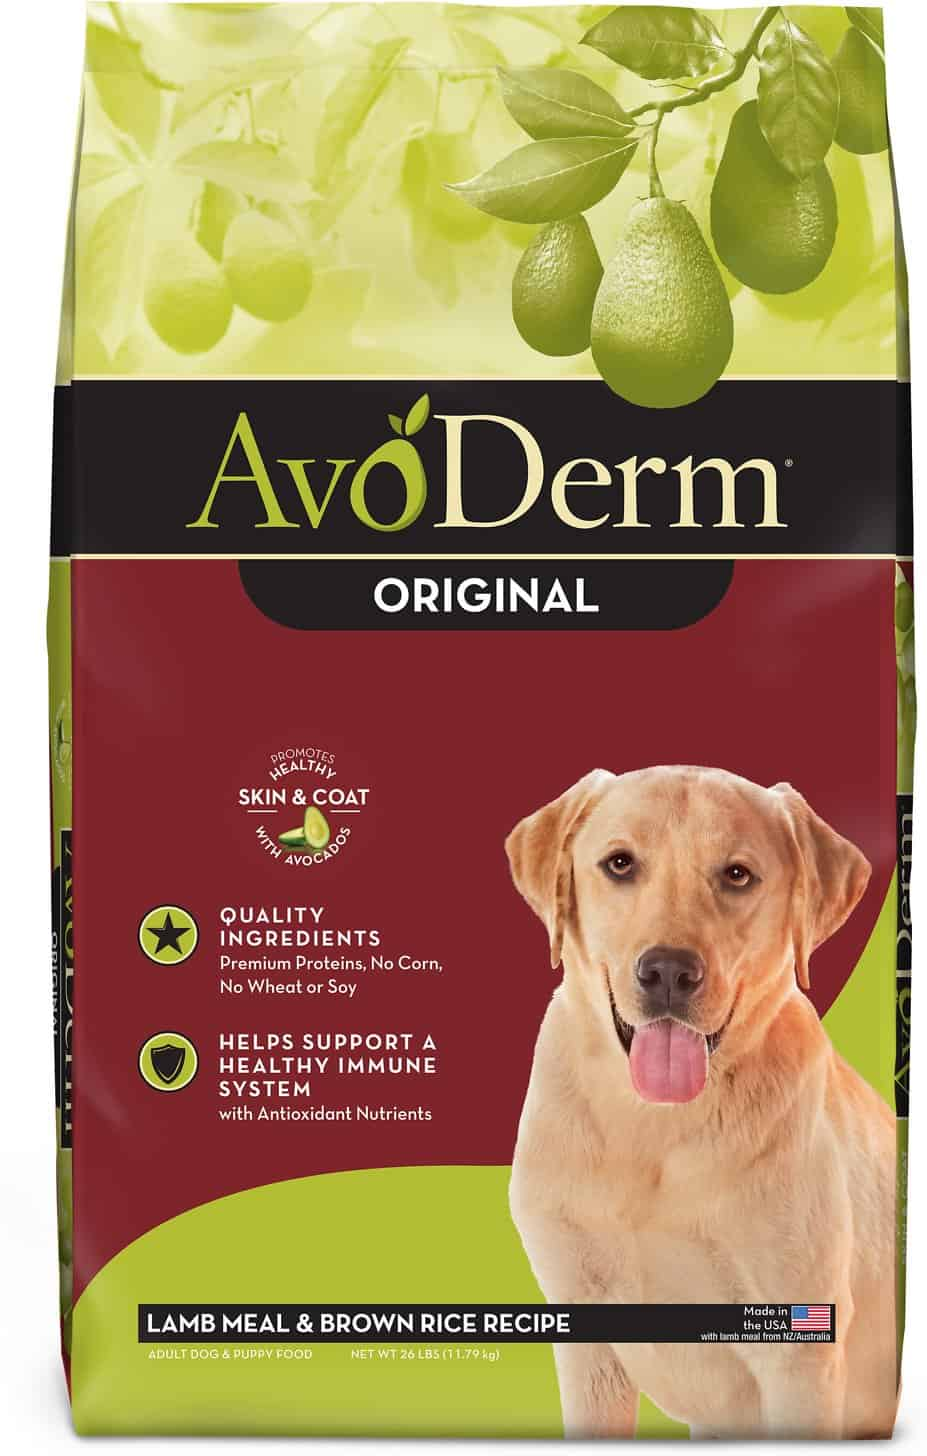 Avoderm Dog Food Review 2021: Is Avocado Best for Dogs? 16